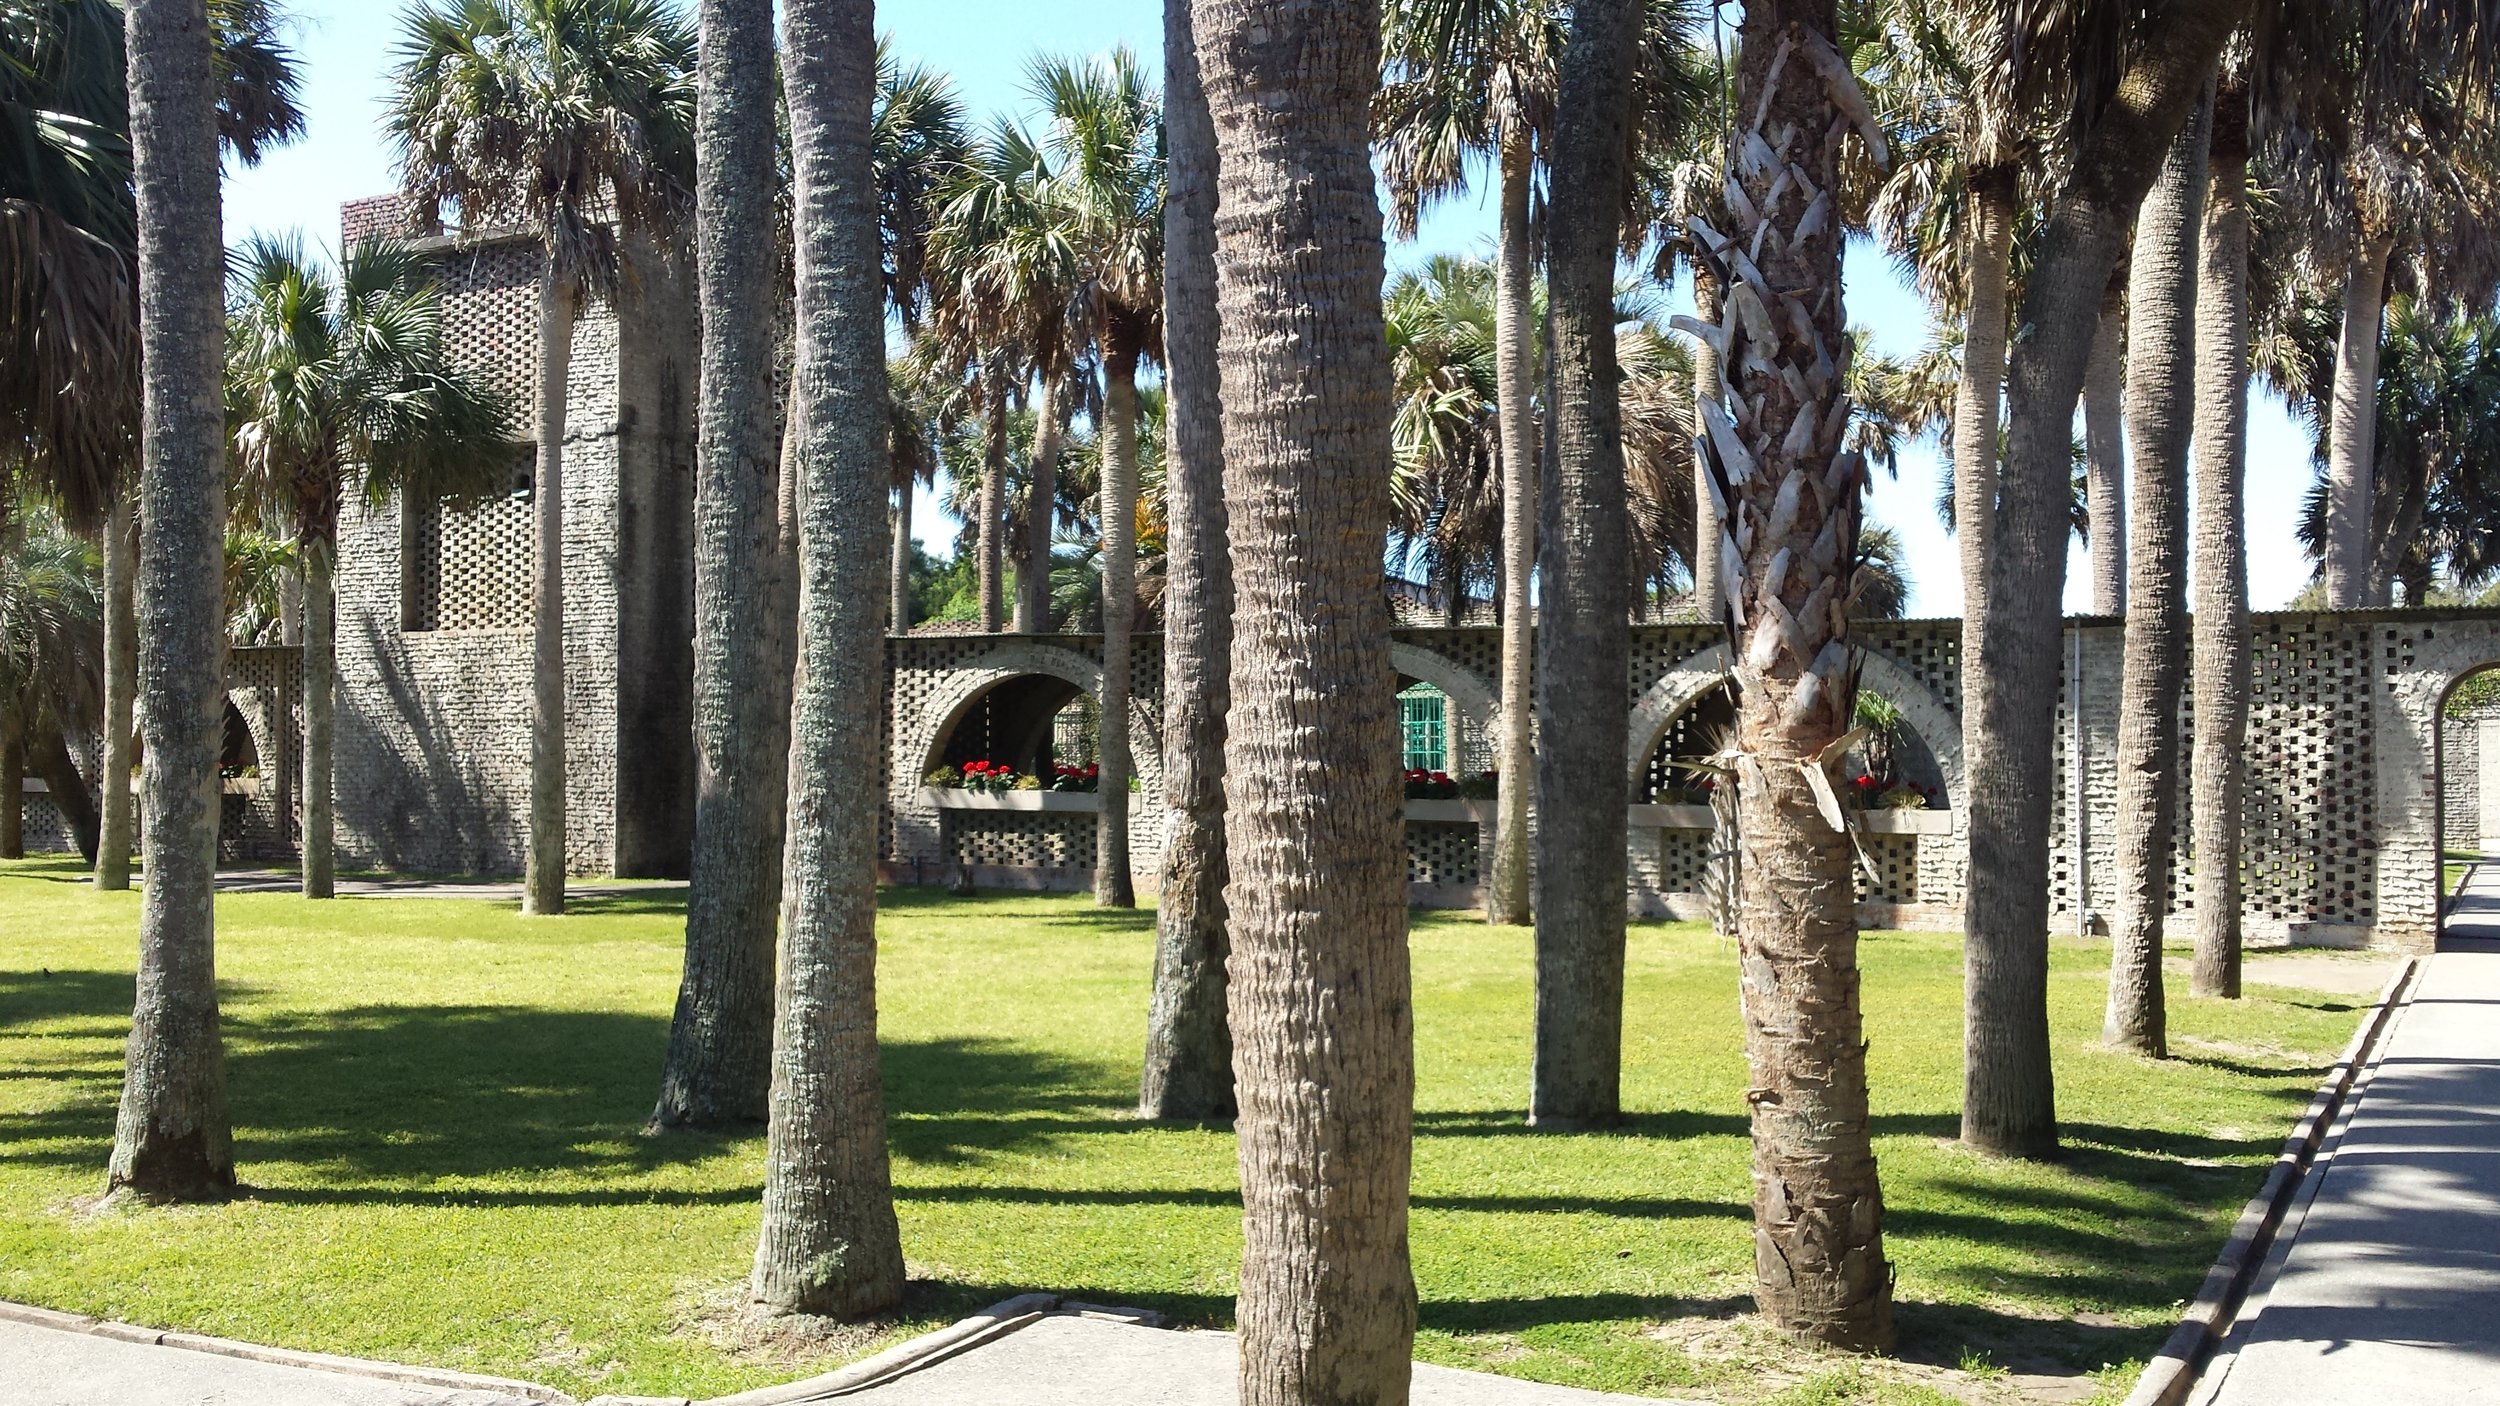 Weekend Getaway Planner Huntington Beach State Park South Carolina Tips On Rving From The Small Rv Ninja Beach Nana Rv Travels